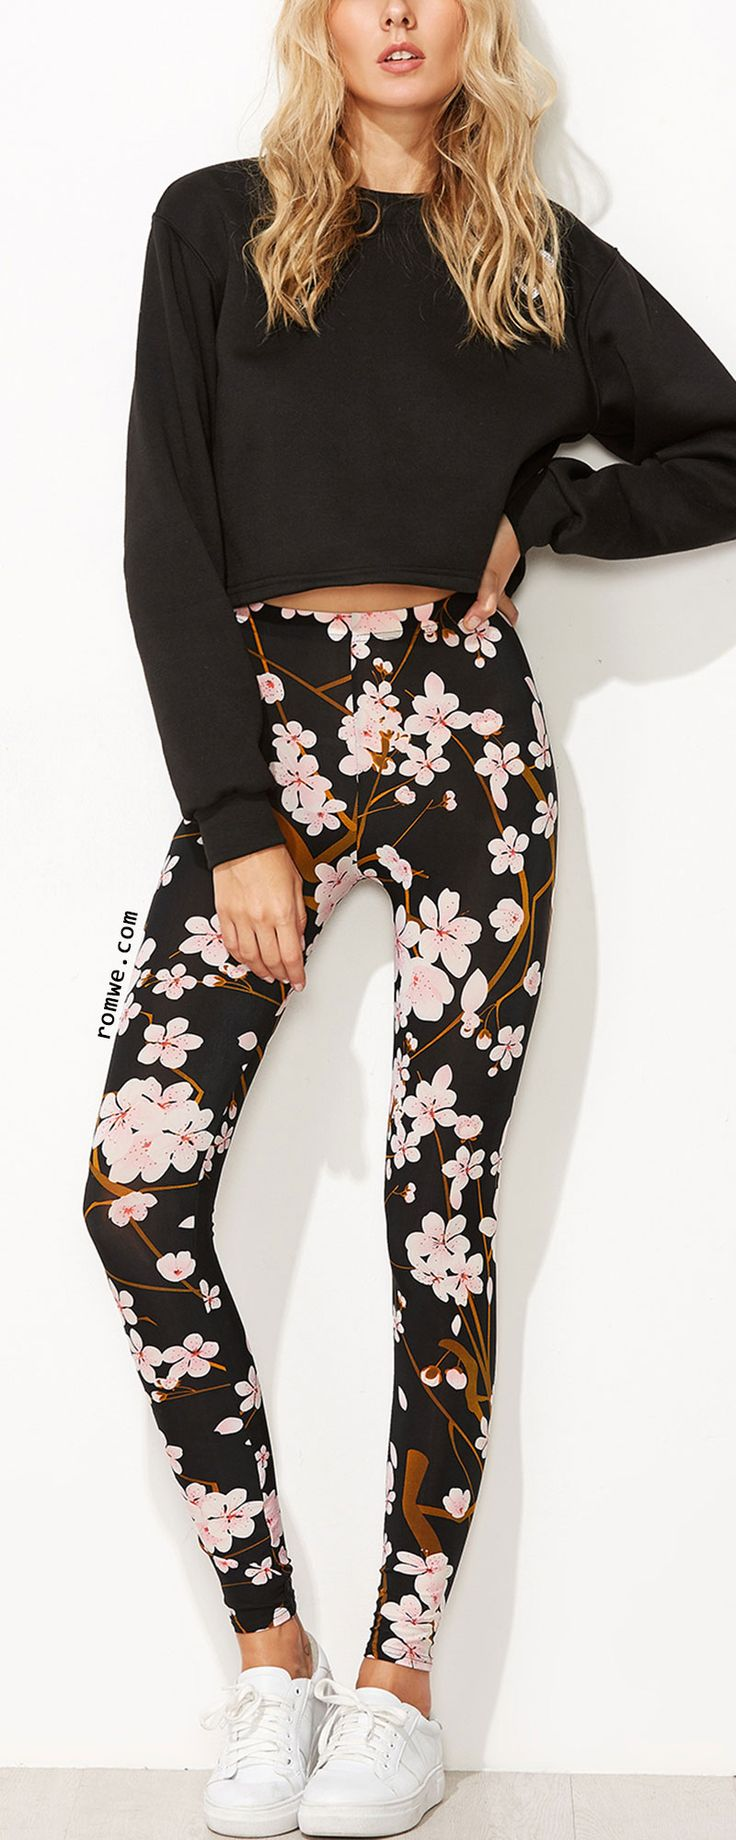 25 best ideas about printed leggings outfit on pinterest